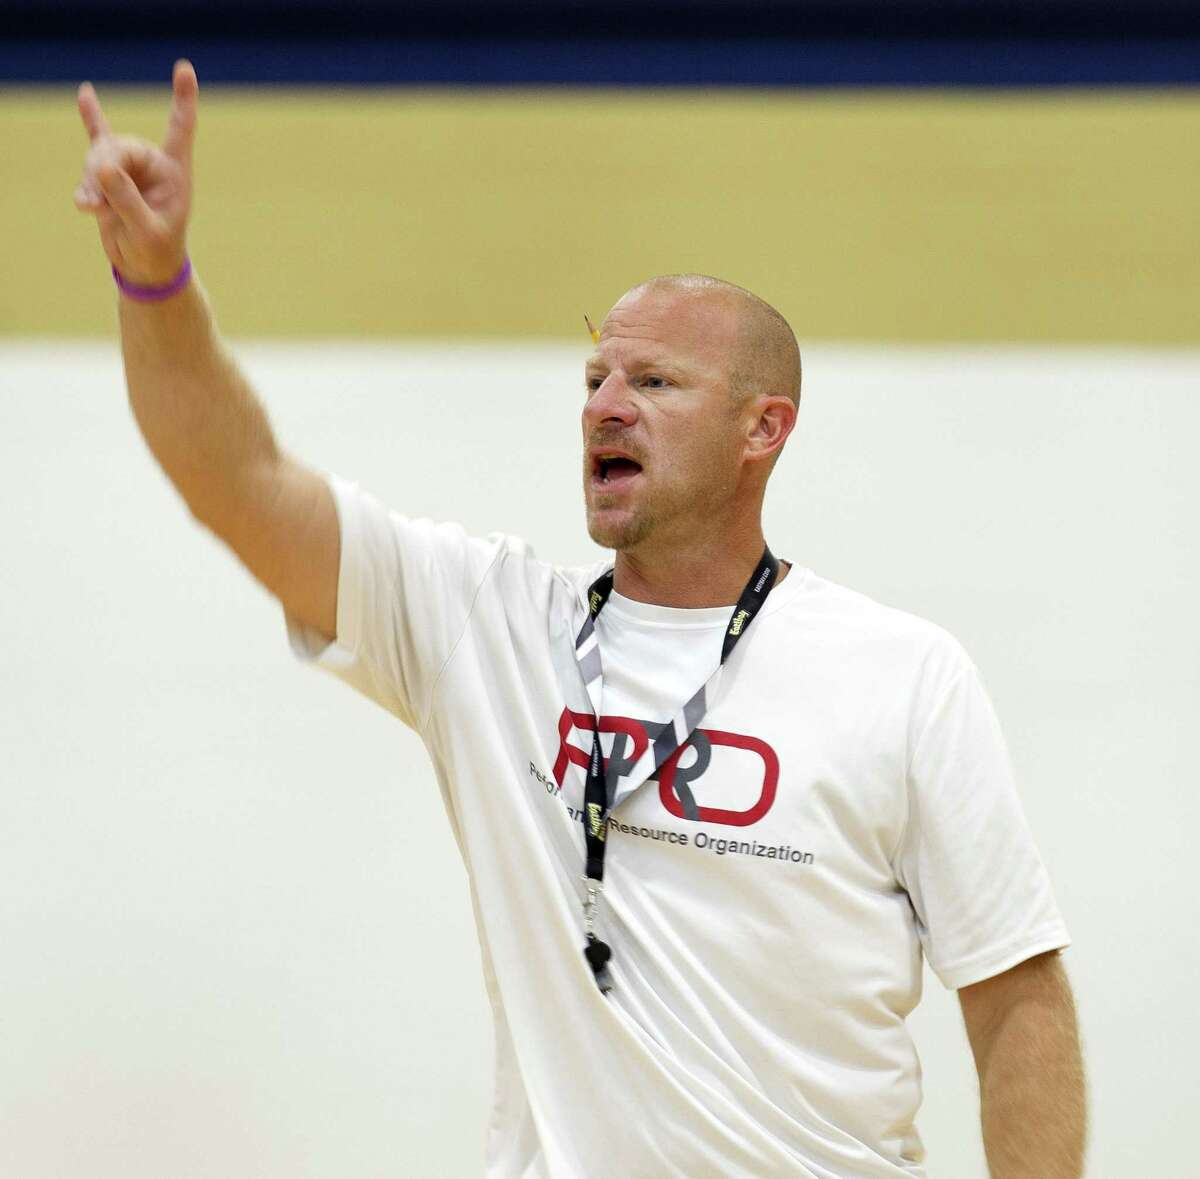 Lake Creek head coach Shannon Spencer shouts instructions during a basketball camp at Oak Hills Junior High School on Wednesday in Montgomery.